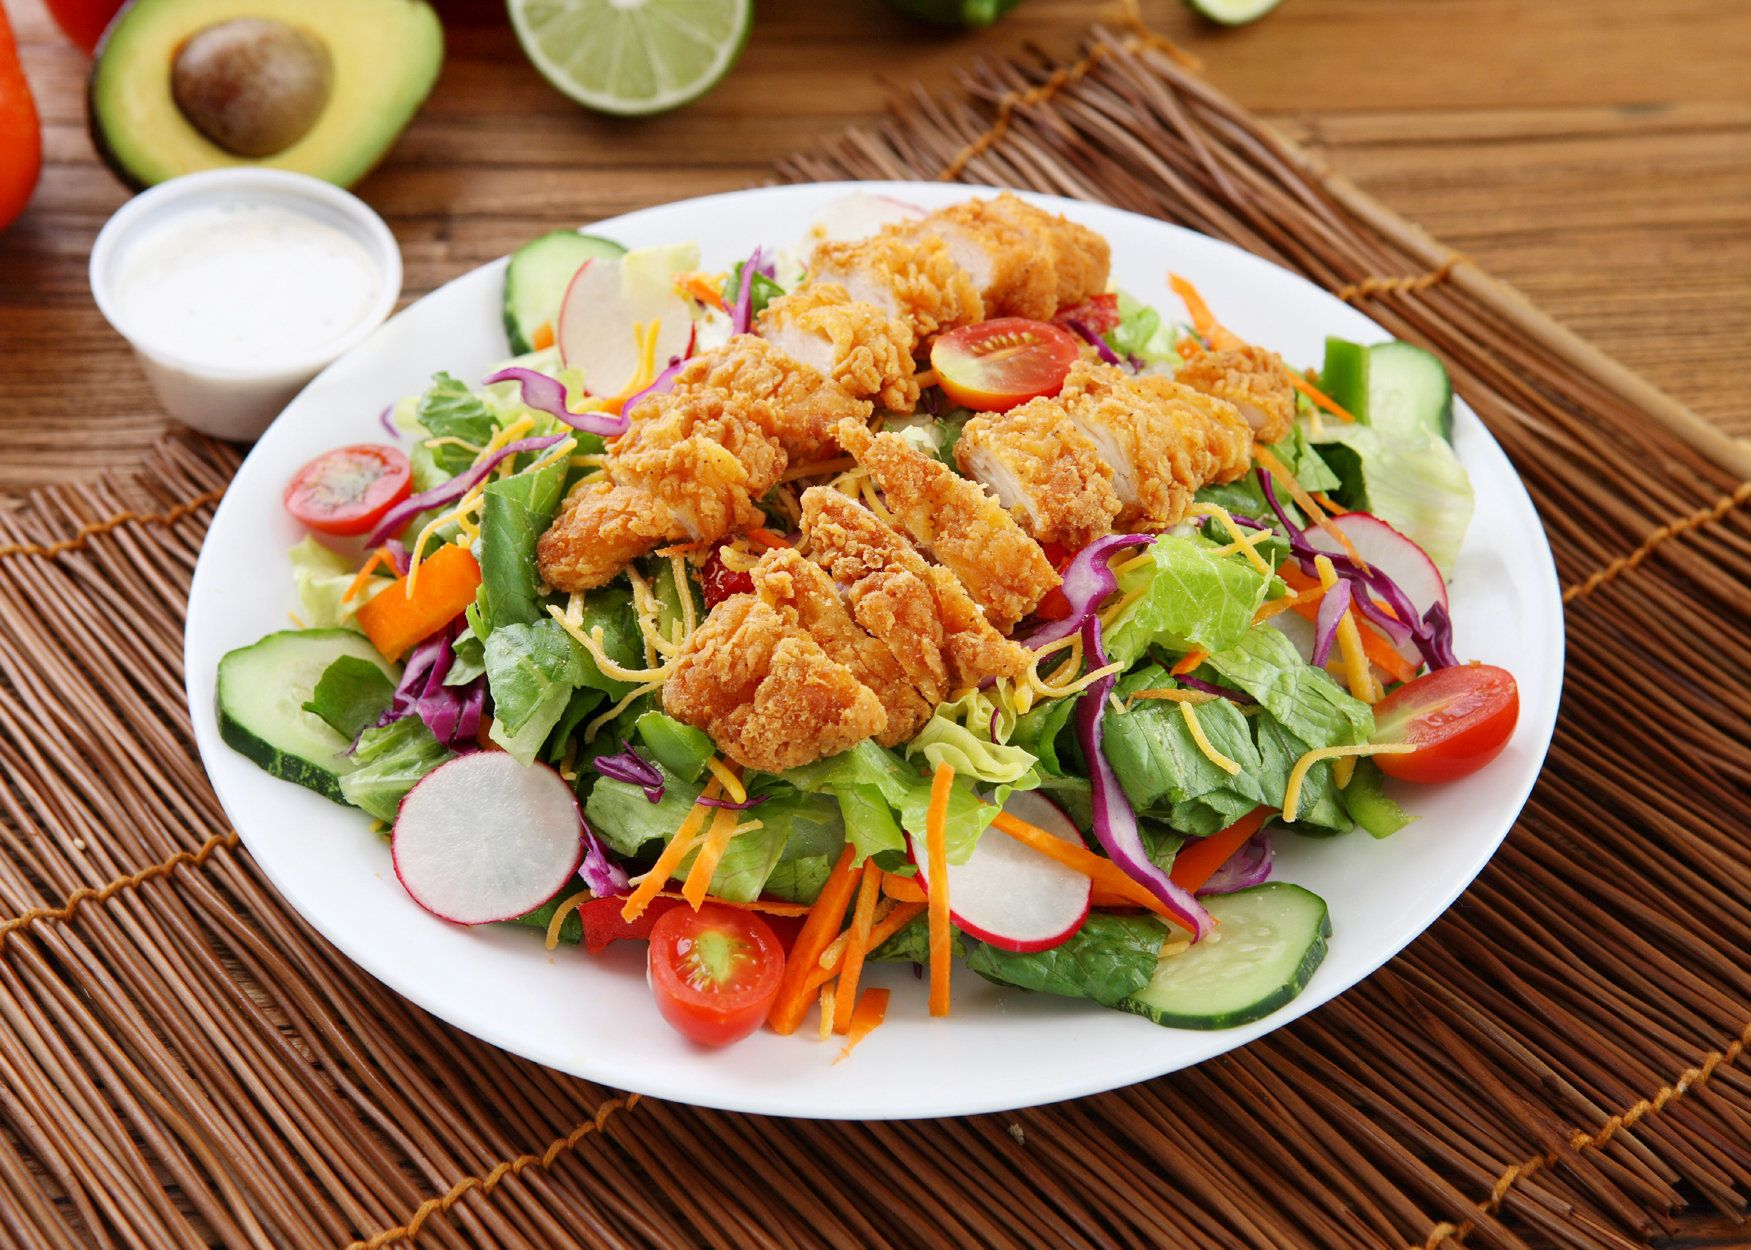 7 Of The Worst Fast-Food Salads According To Nutritionists